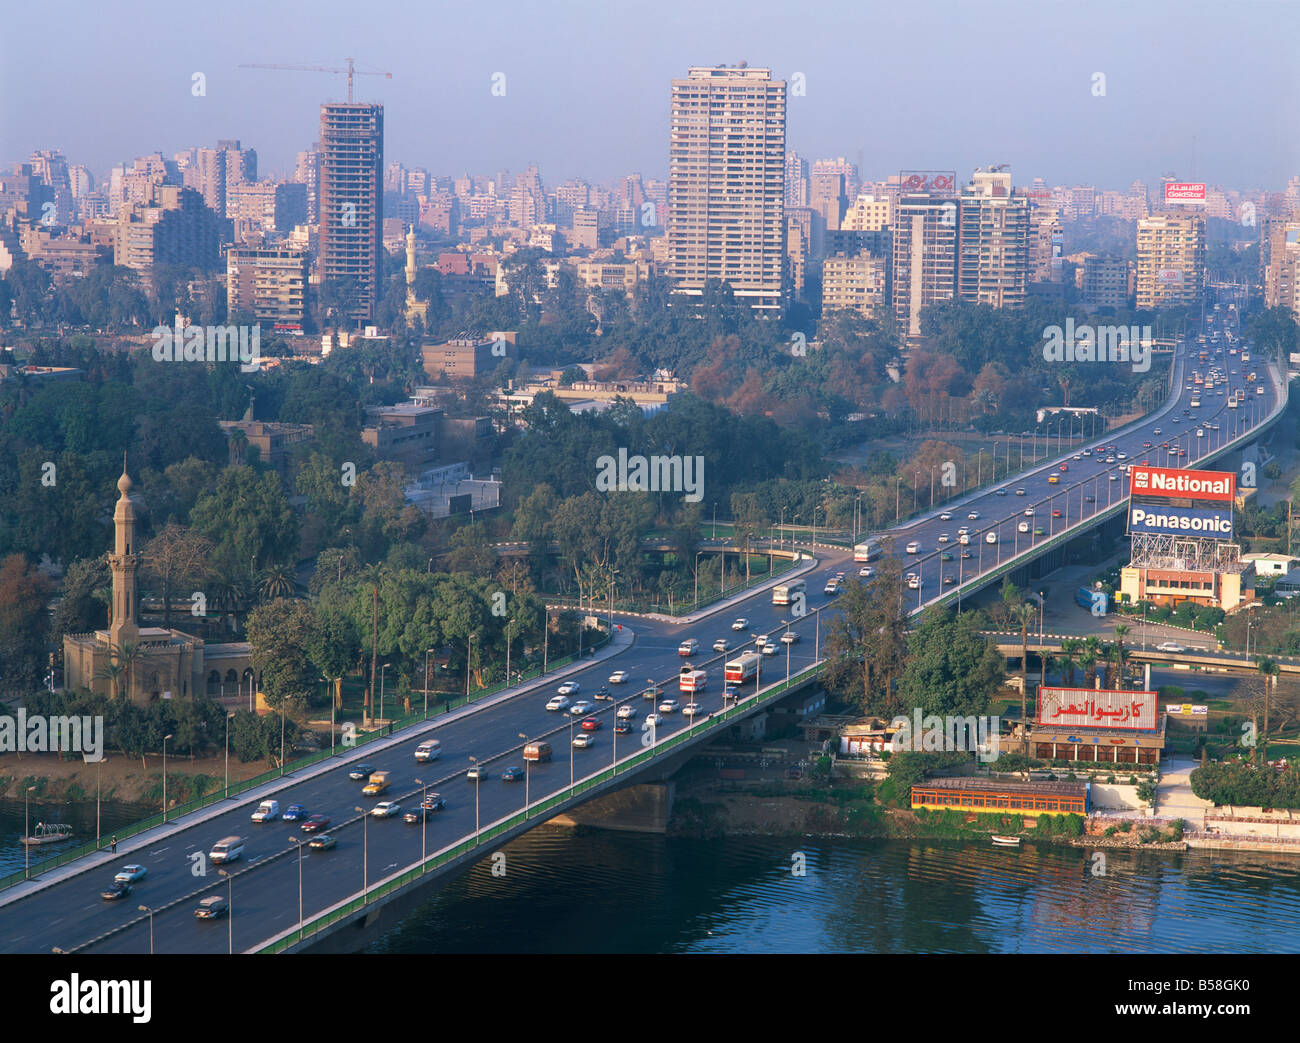 City Skyline With The 6th October Bridge Over River Nile Seen From Cairo Tower Egypt North Africa